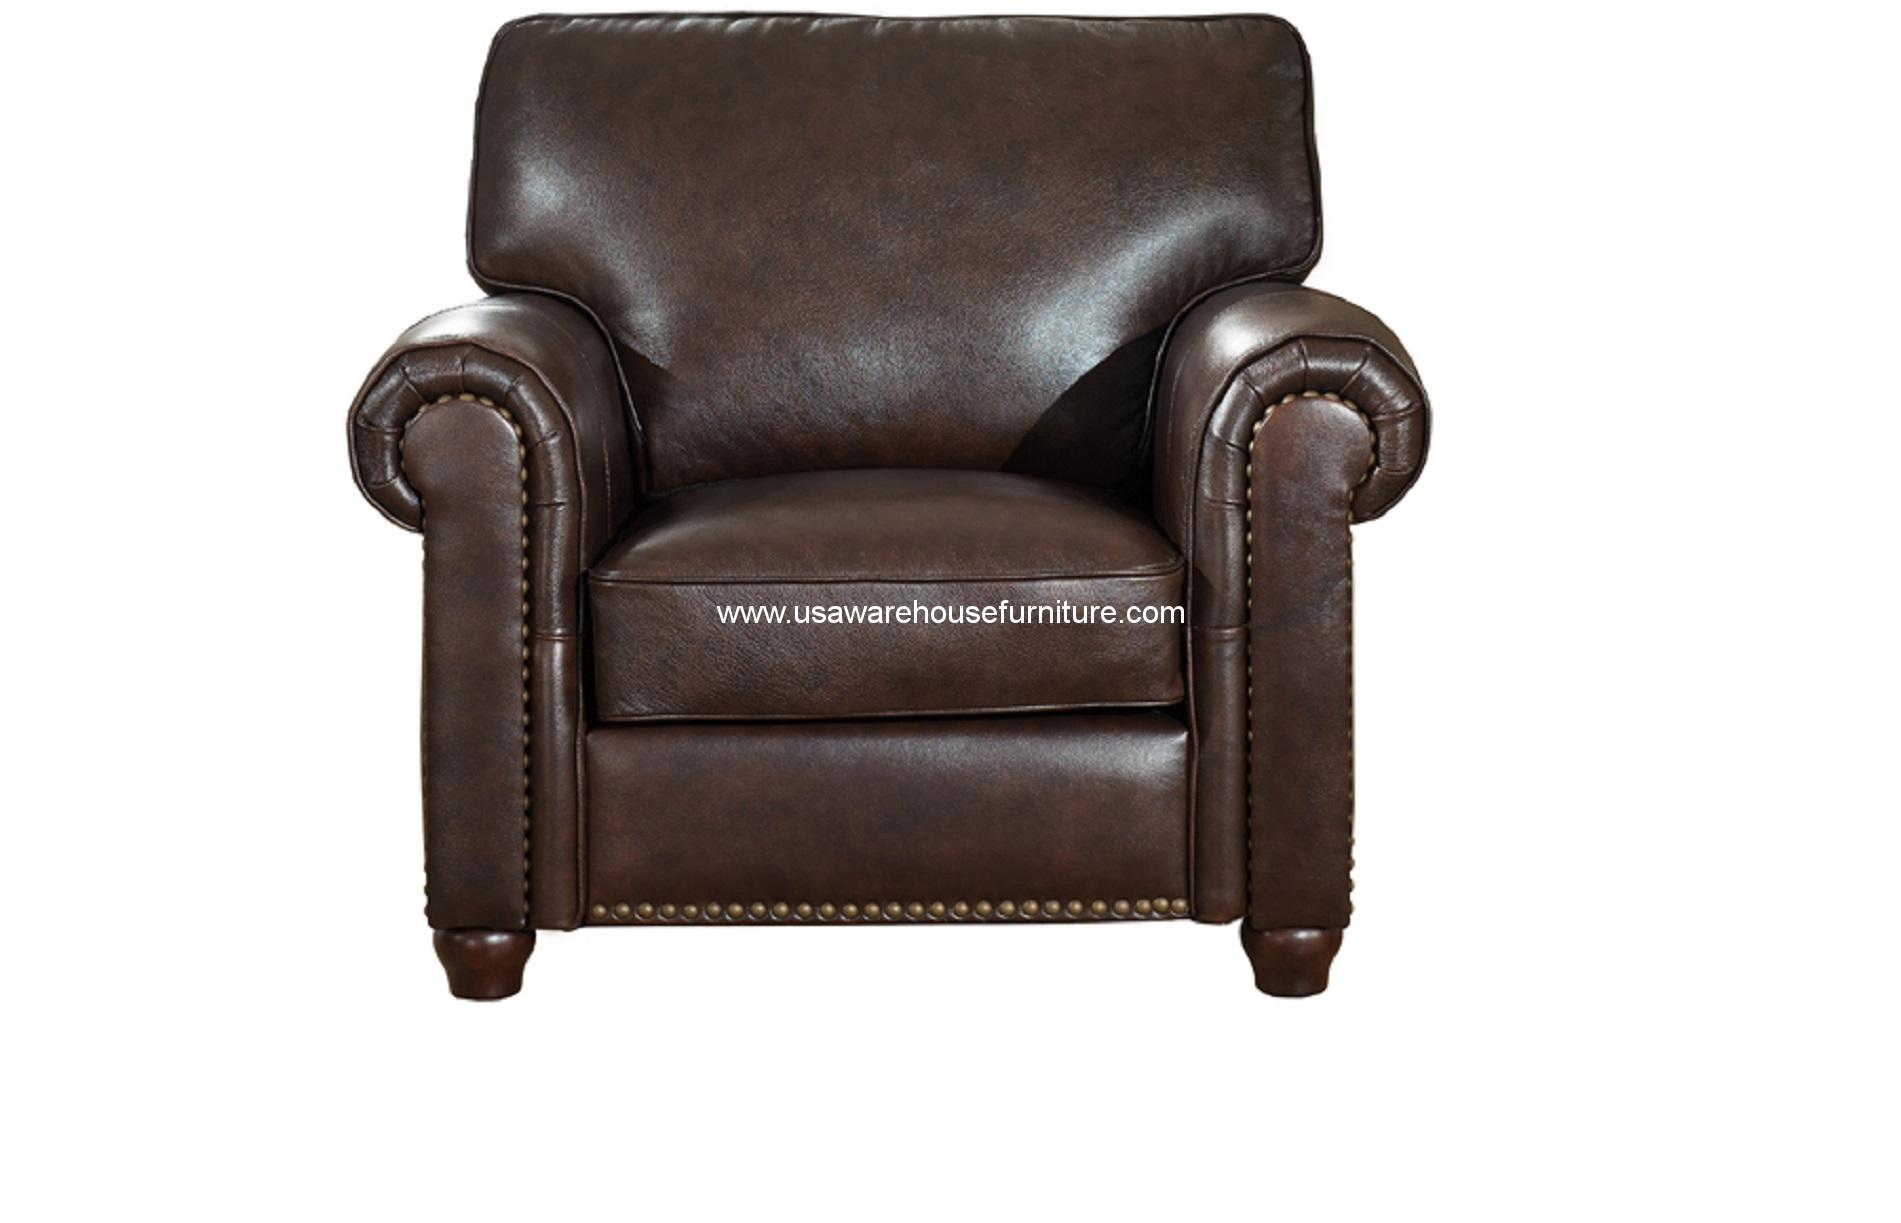 barbara dark brown full top grain leather chair usa warehouse furniture. Black Bedroom Furniture Sets. Home Design Ideas